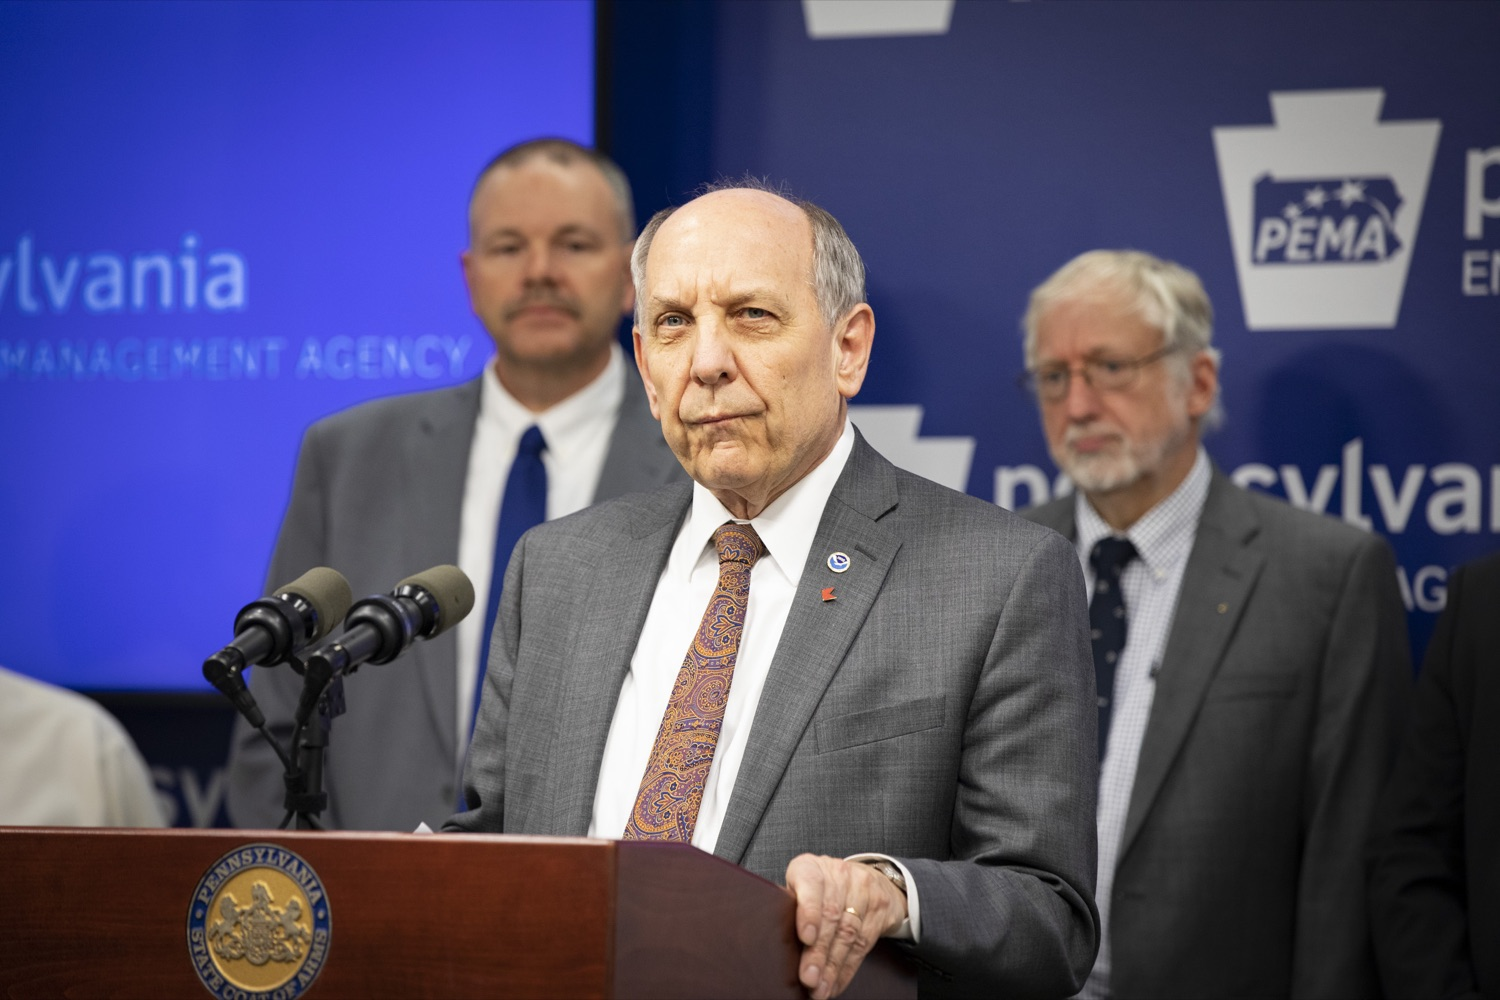 "<a href=""http://filesource.abacast.com/commonwealthofpa/photo/17500_pema_StormReady_cz_11.JPG"" target=""_blank"">⇣ Download Photo<br></a>National Weather Service Director Dr. Louis Uccellini, Ph.D., discusses the importance of meeting the StormReady requirements for Pennsylvania and its visitors, in Harrisburg on November 20, 2019."